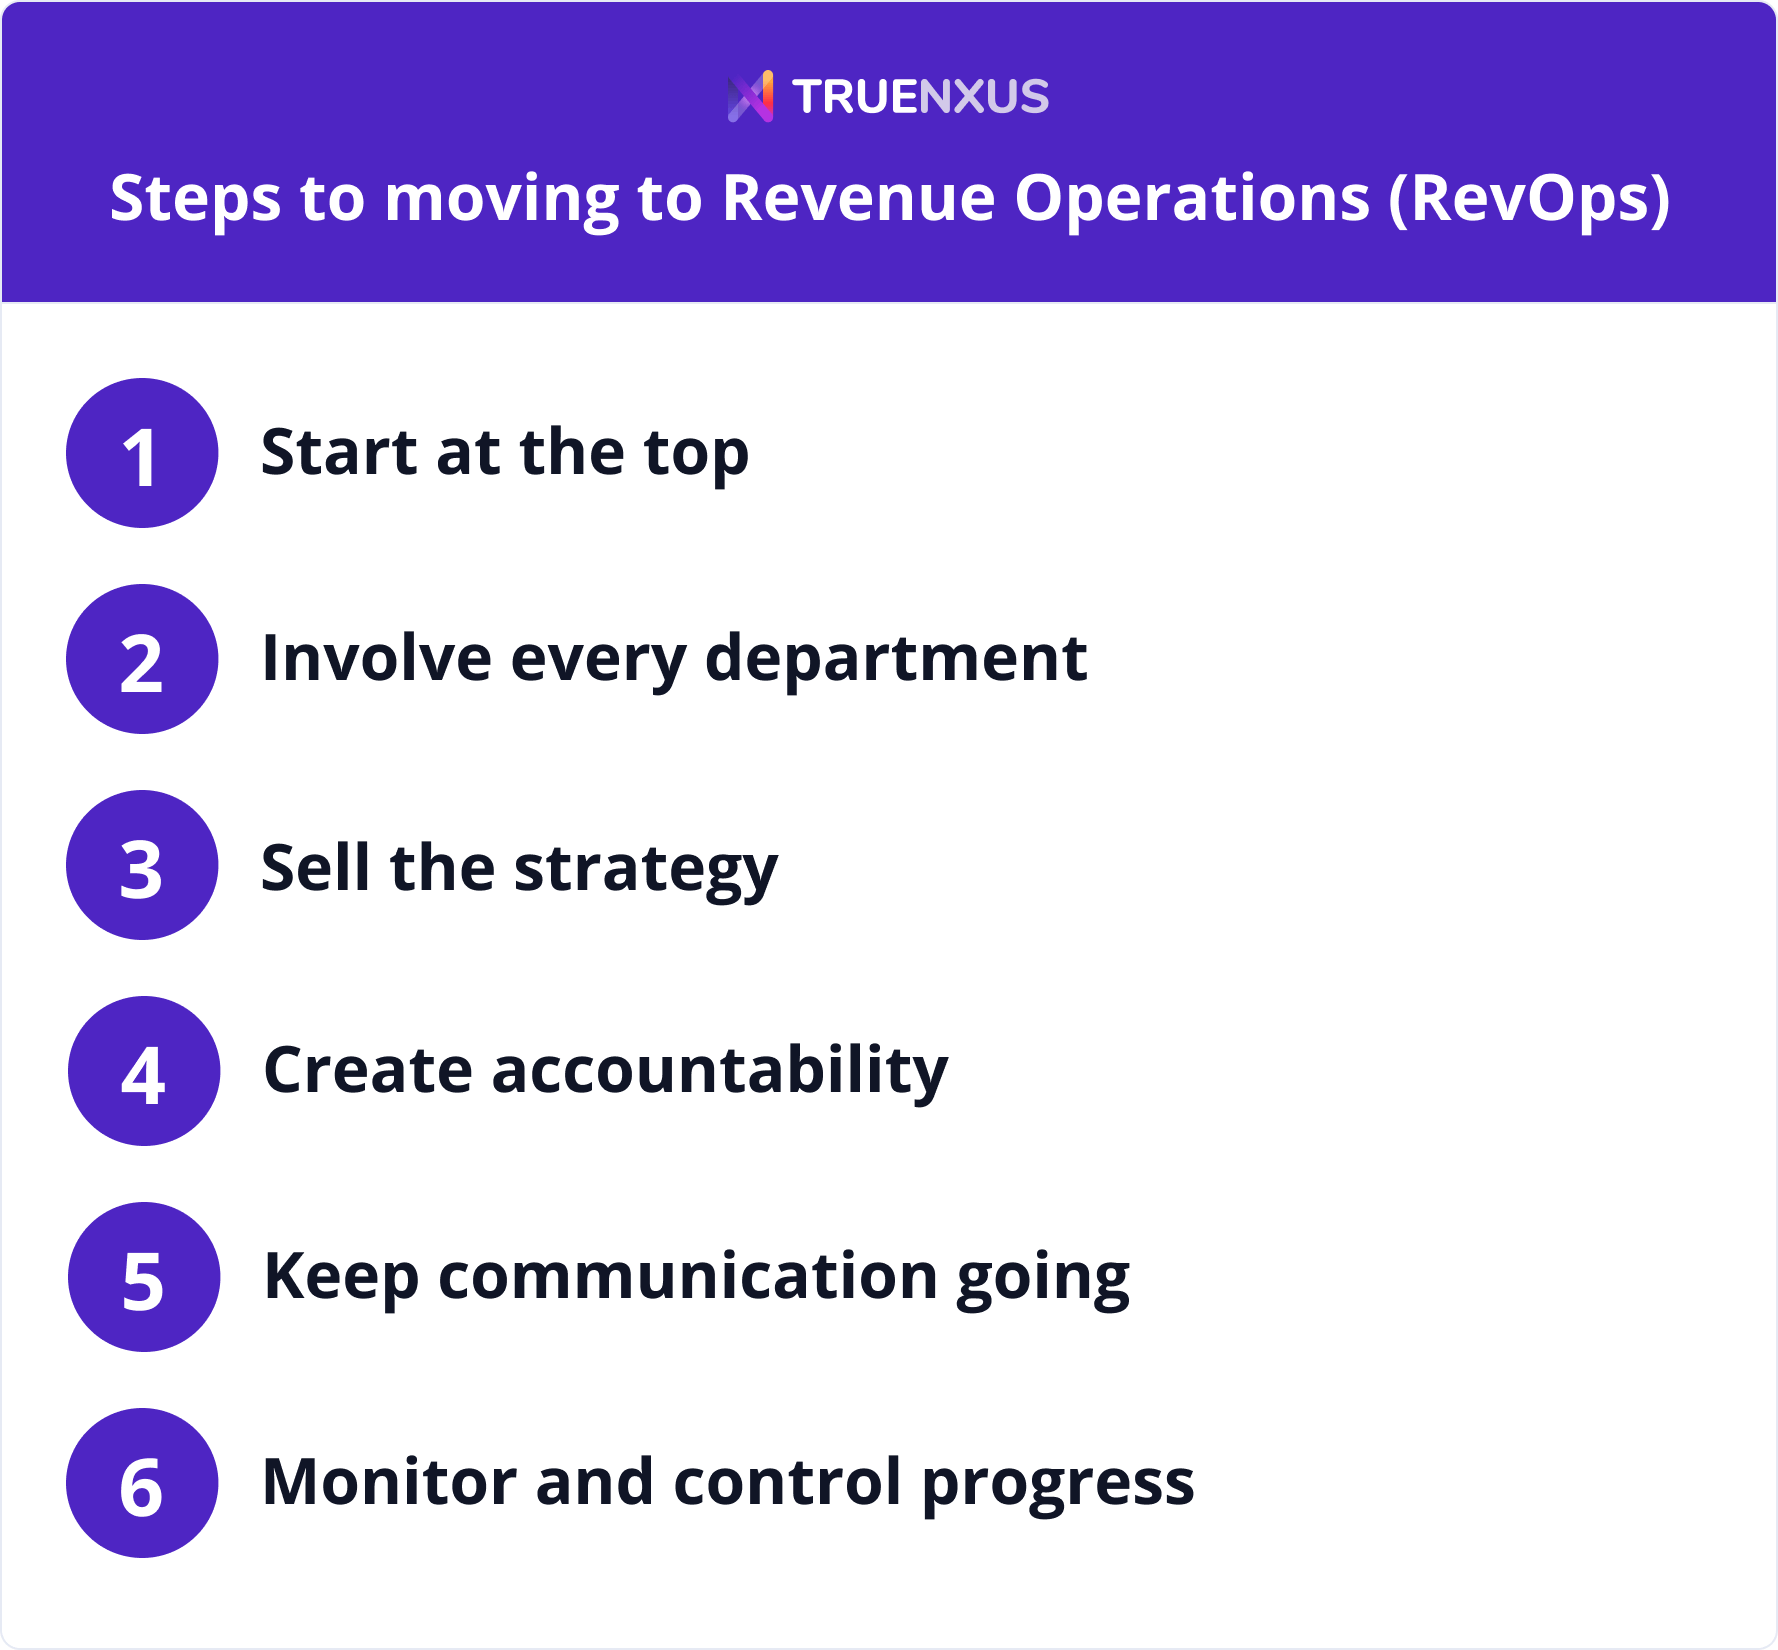 Steps to moving to Revenue Operations (RevOps)